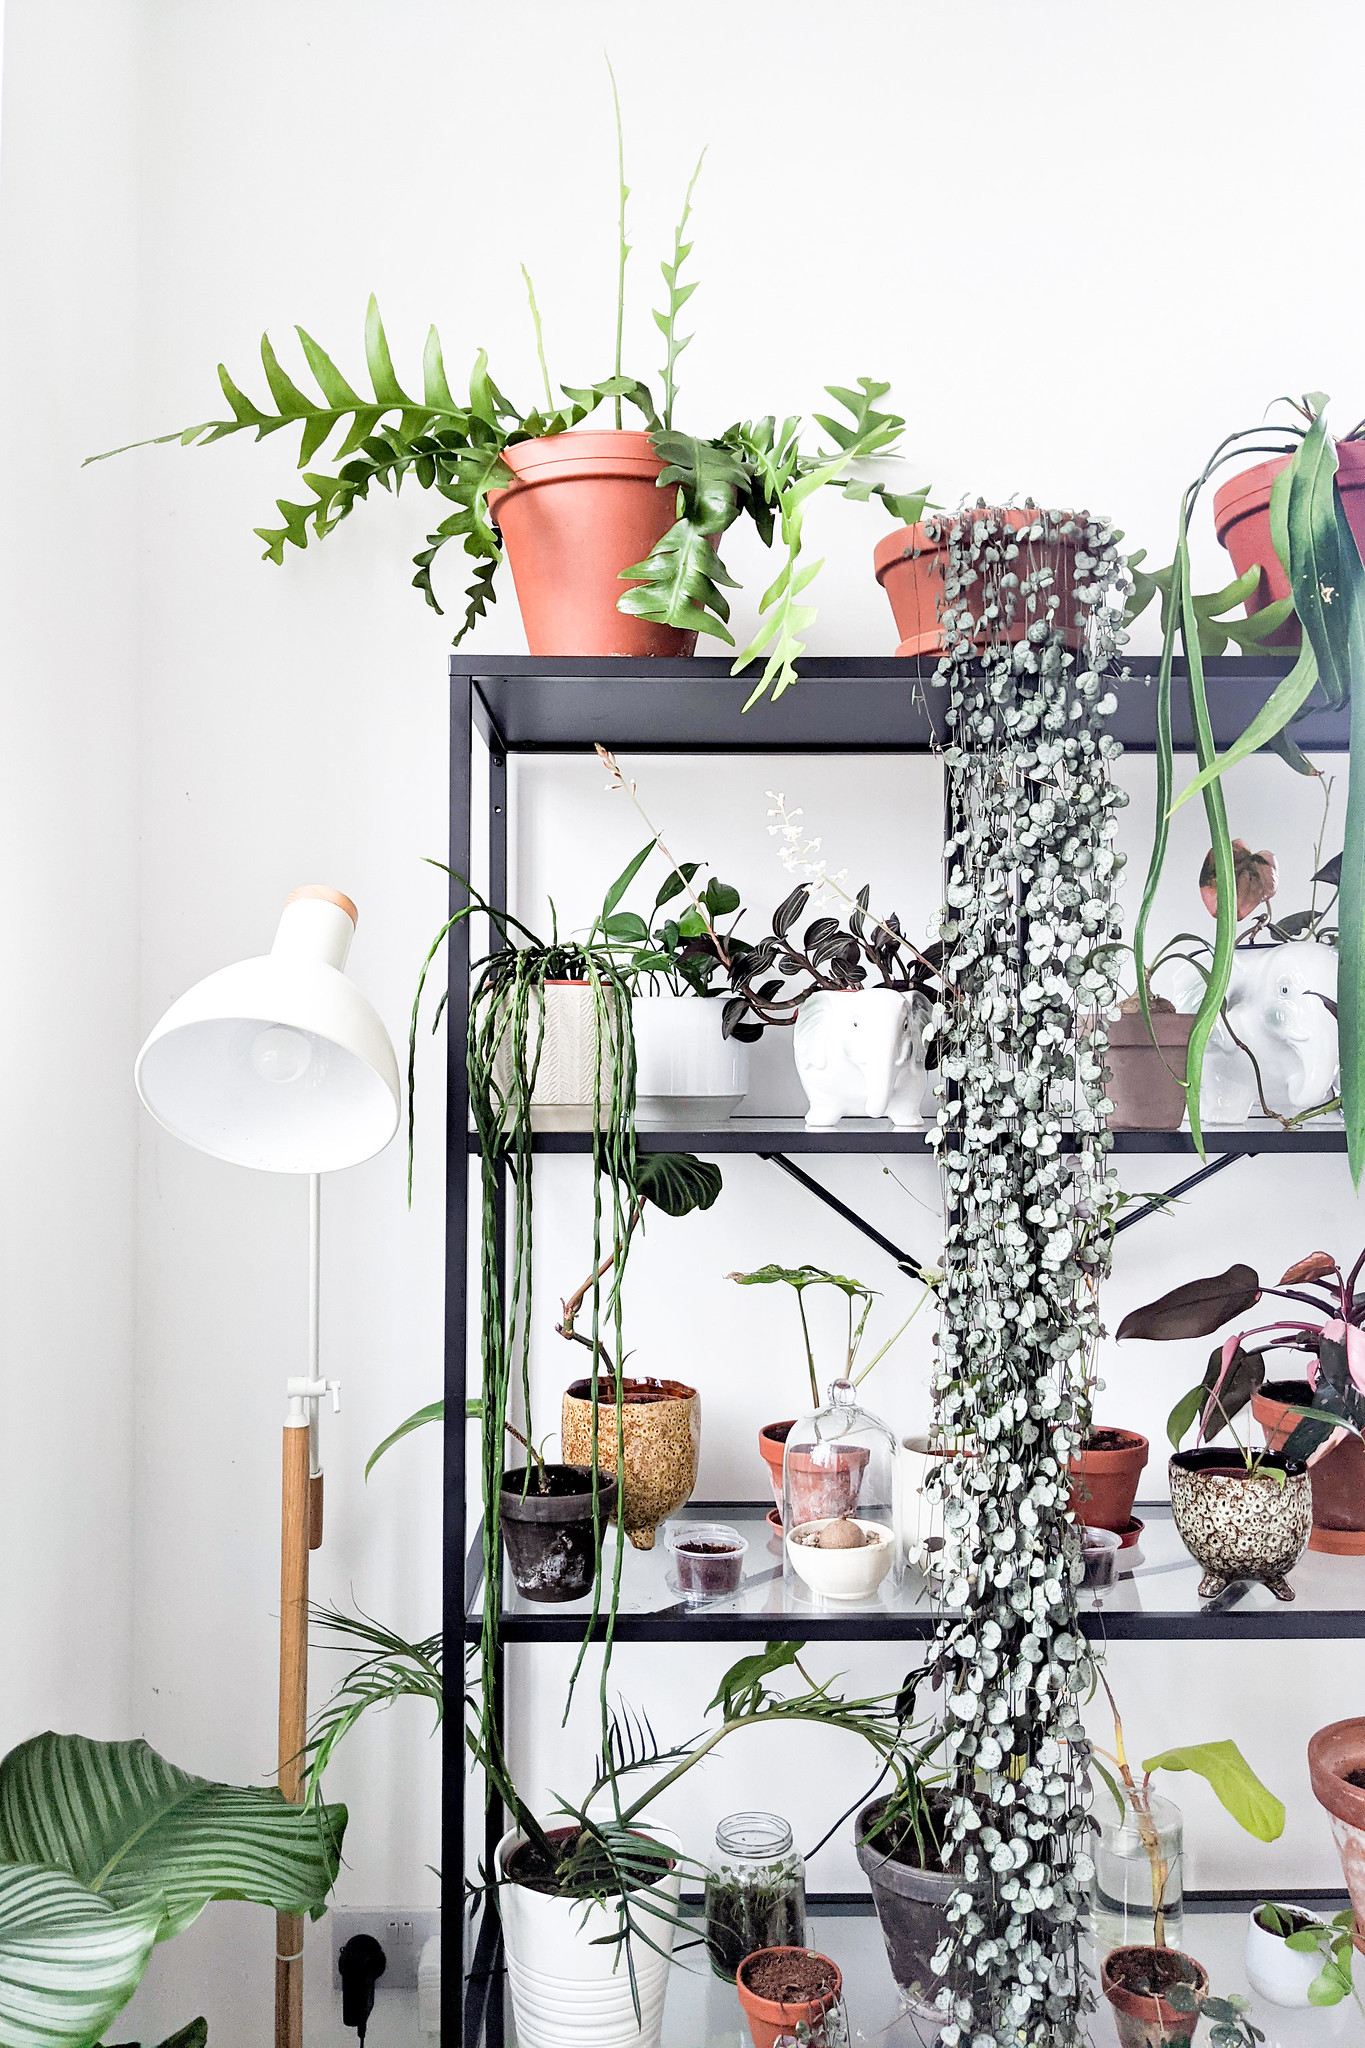 House Plant Care For Spring and Summer